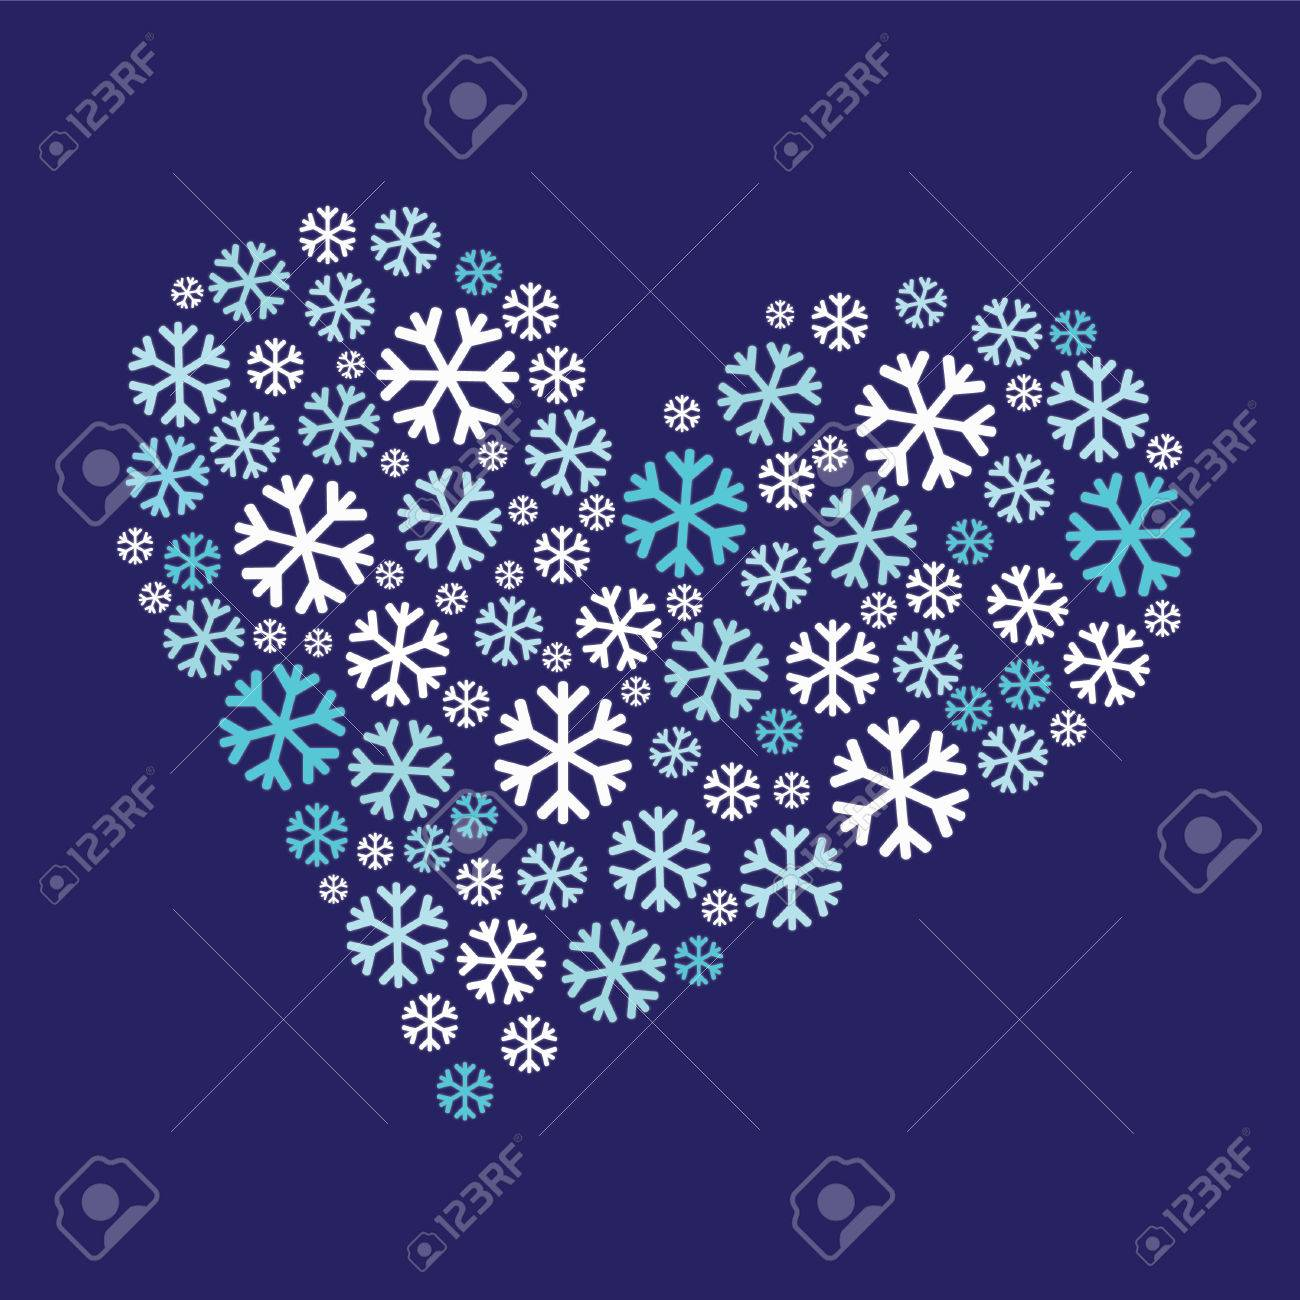 Heart Shape Made From Snowflakes Stock Photo Picture And Royalty